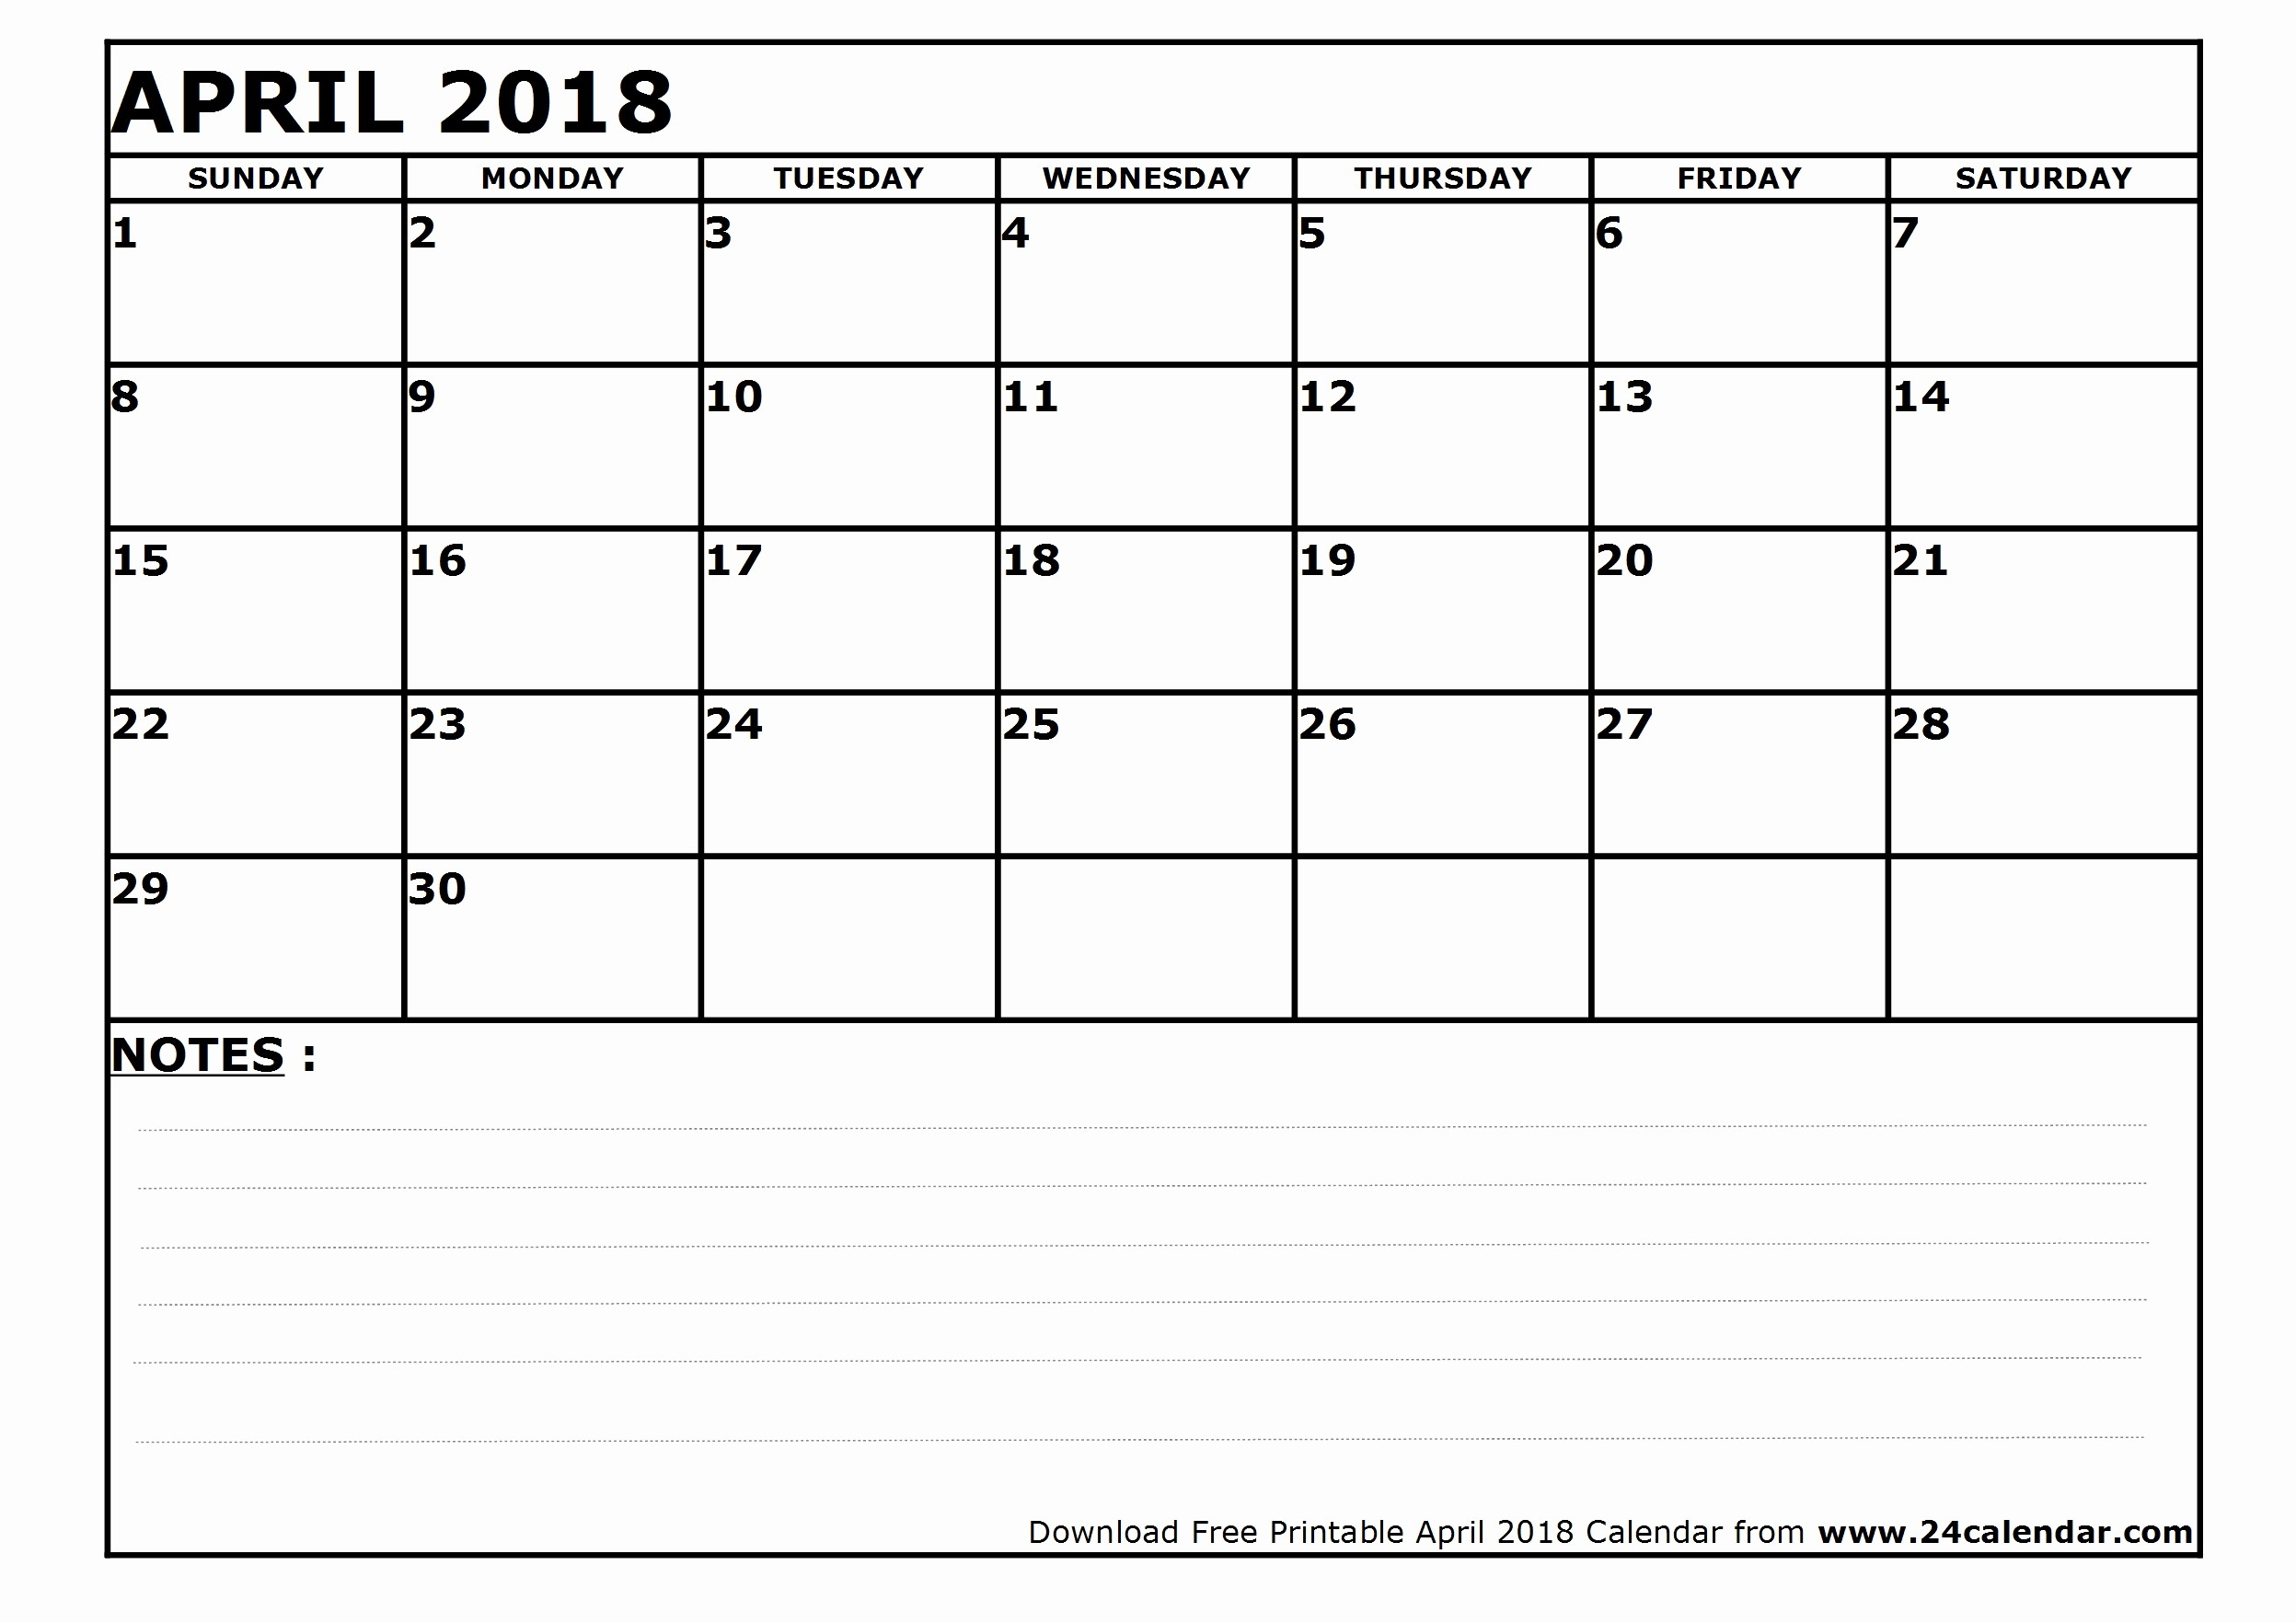 Blank April 2018 Calendar Template Lovely Blank April 2018 Calendar In Printable format